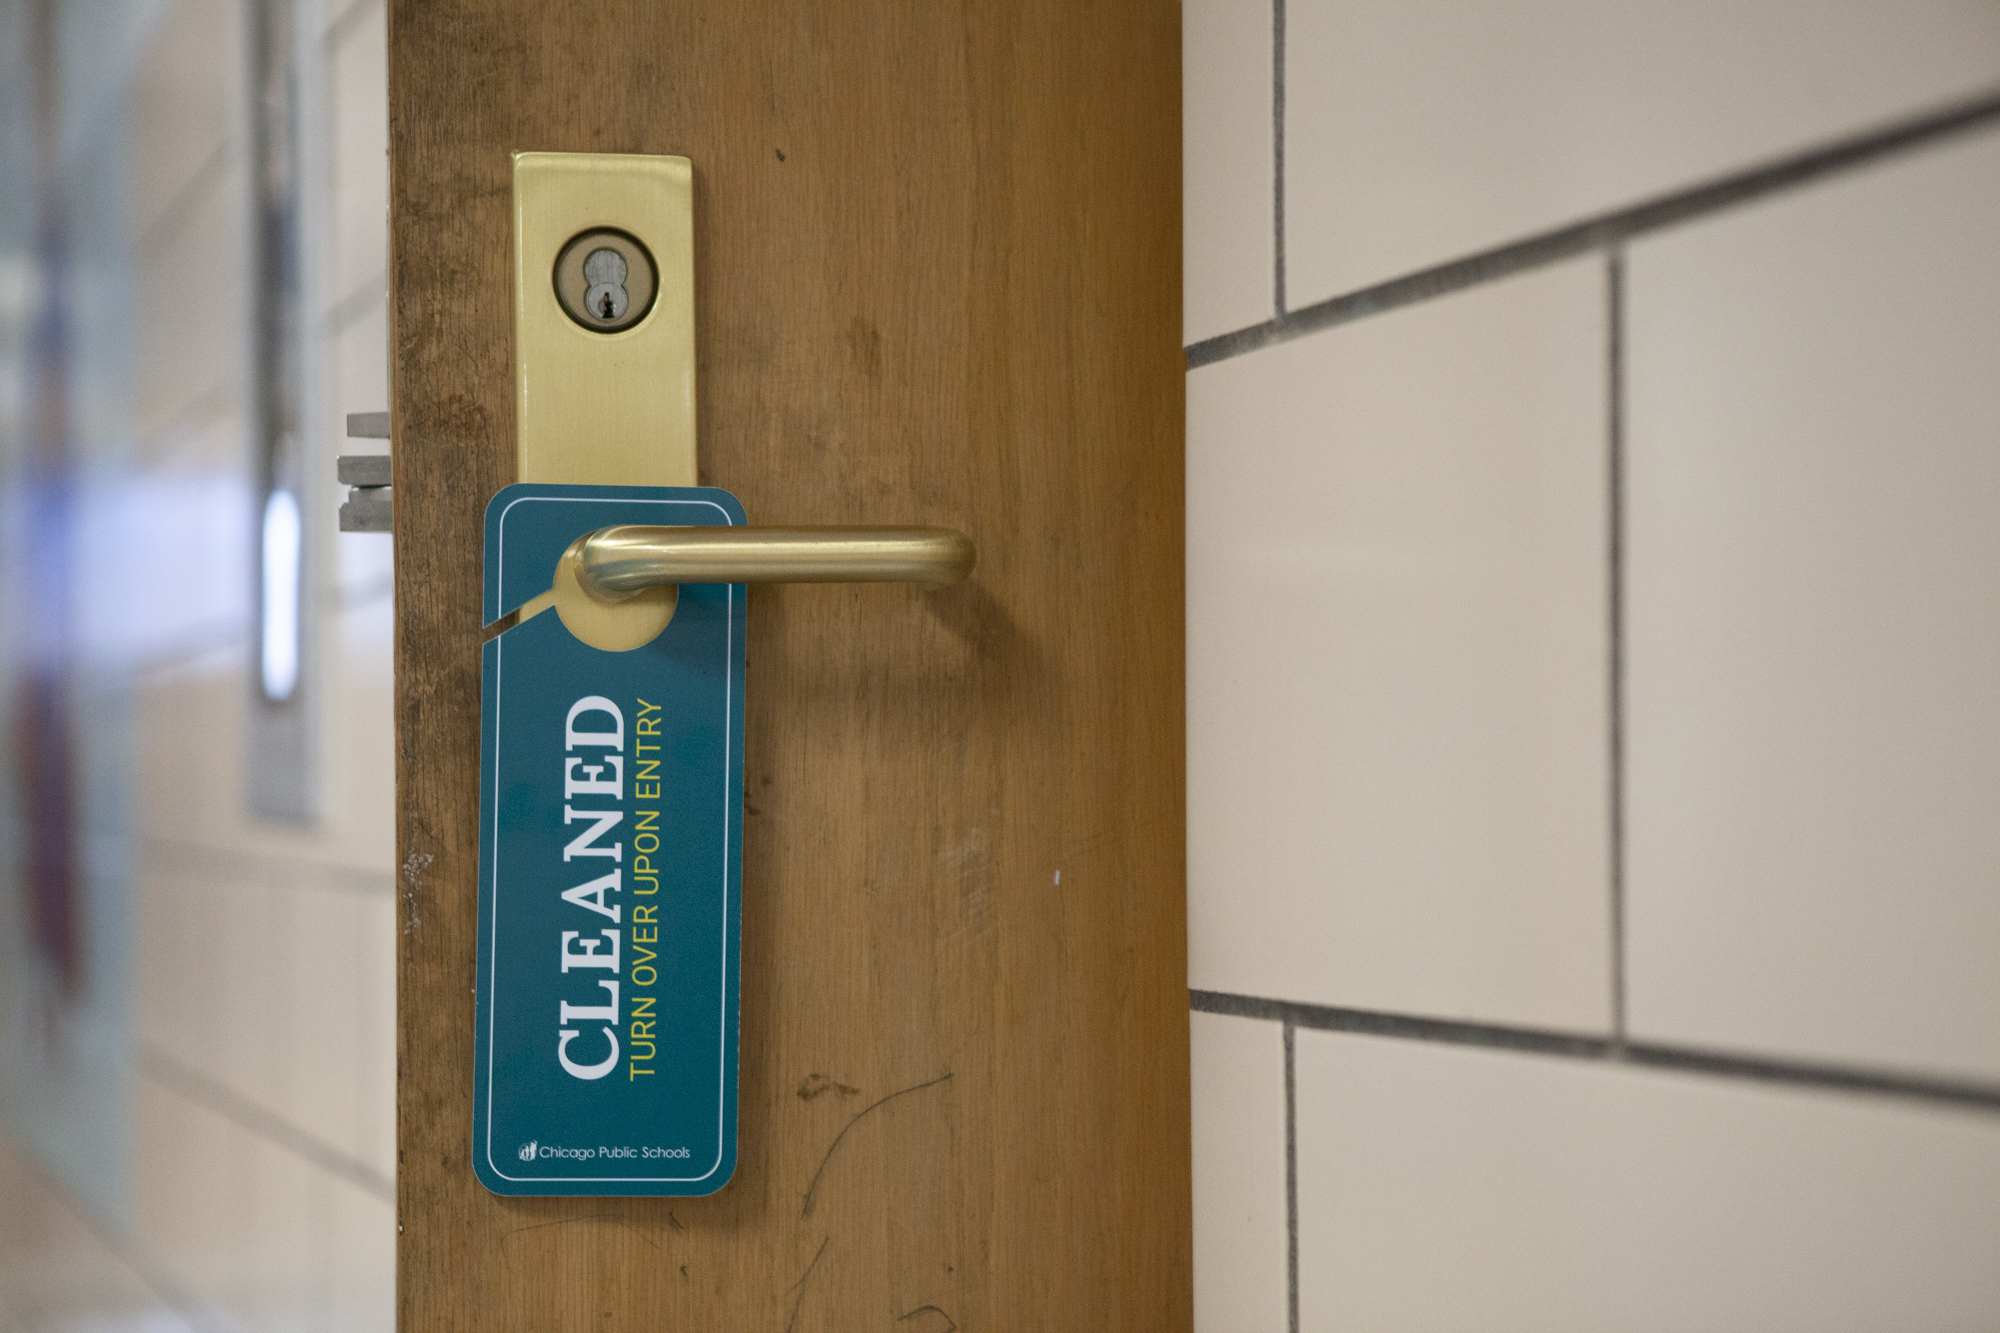 A sign hanging on a doorknob that indicates that the room has recently been cleaned.